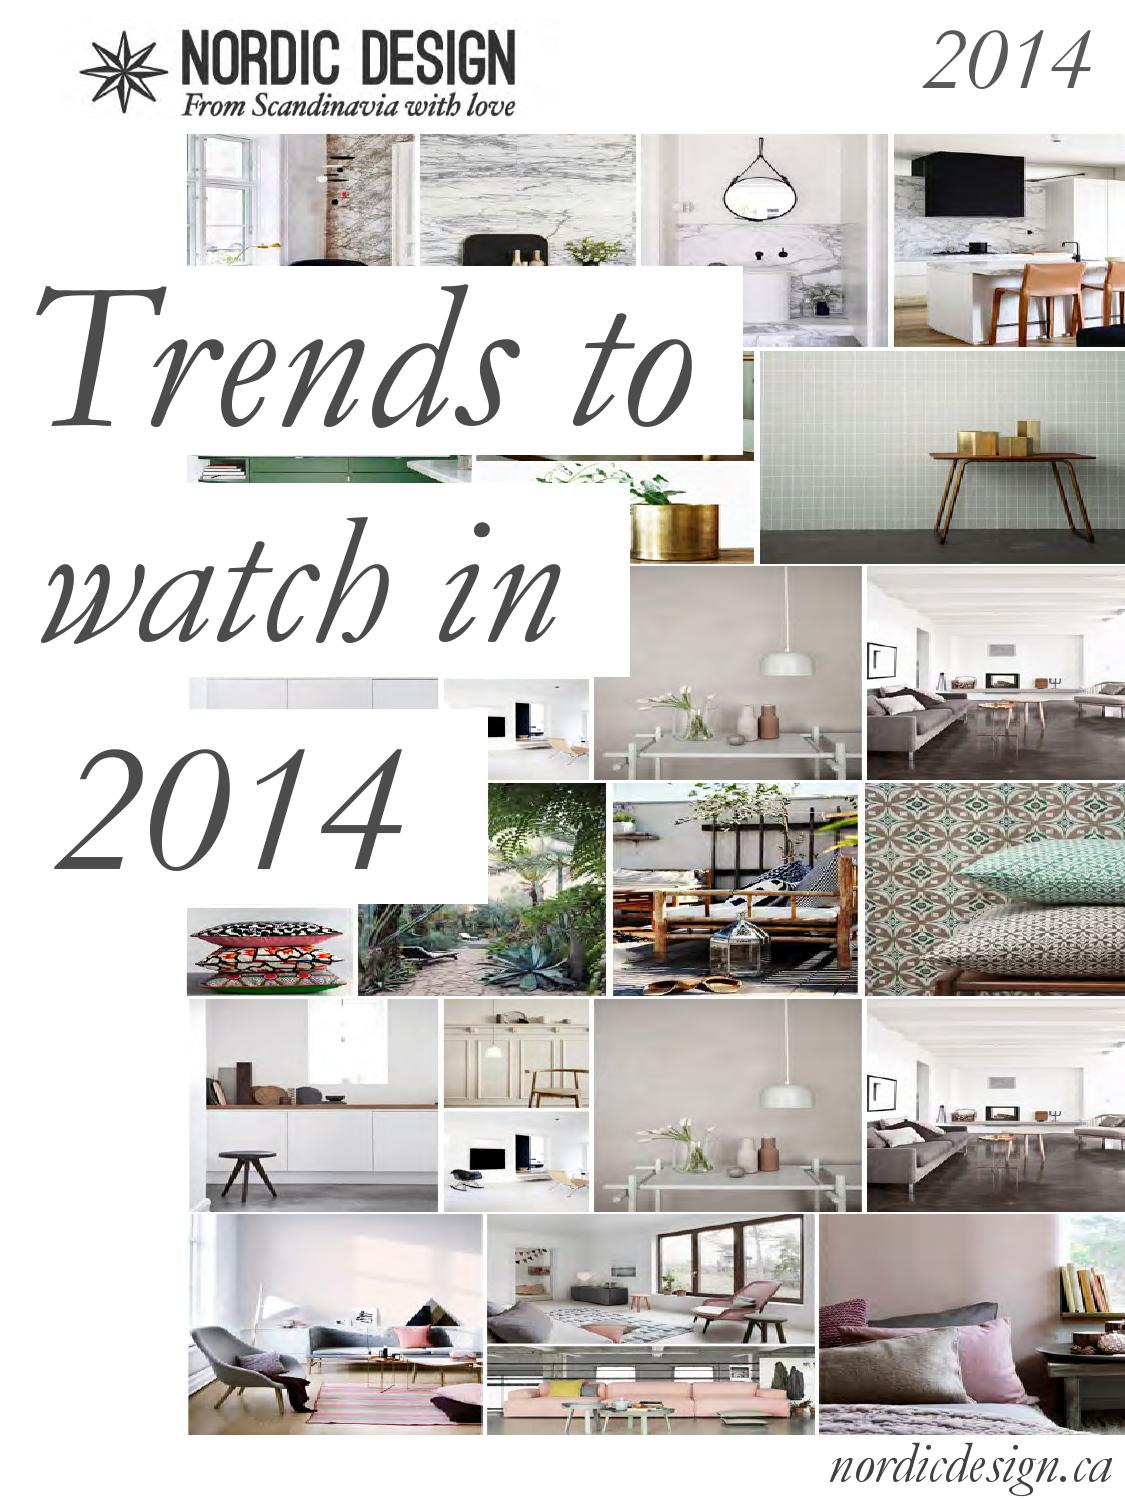 Issuu home decorating trends 2014 by nordic design Home design trends 2014